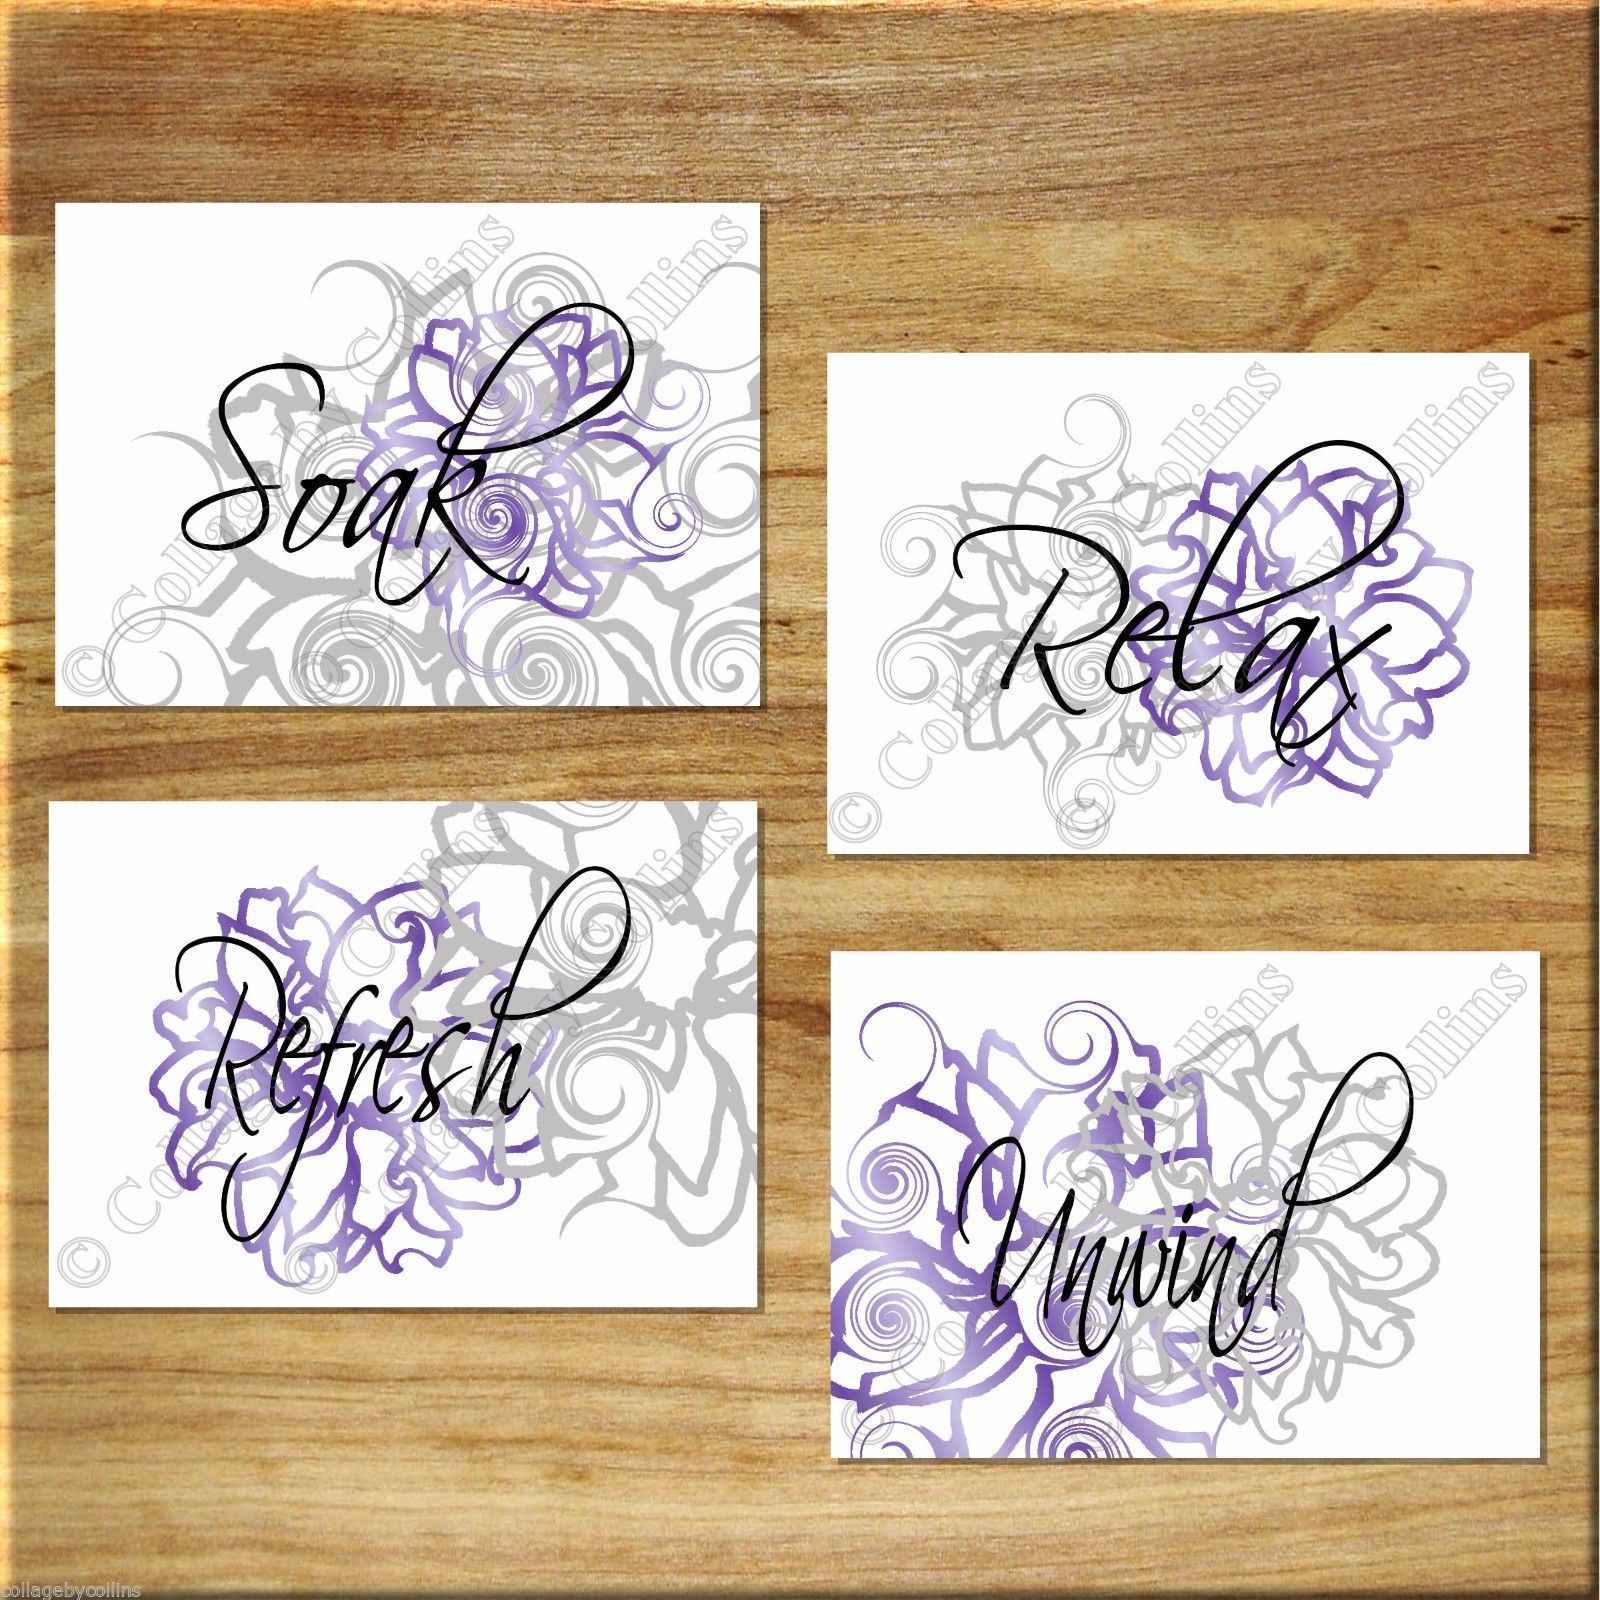 Primary image for PURPLE and GRAY Wall Art Bathroom Flower Floral Prints Decor Relax Soak Unwind +